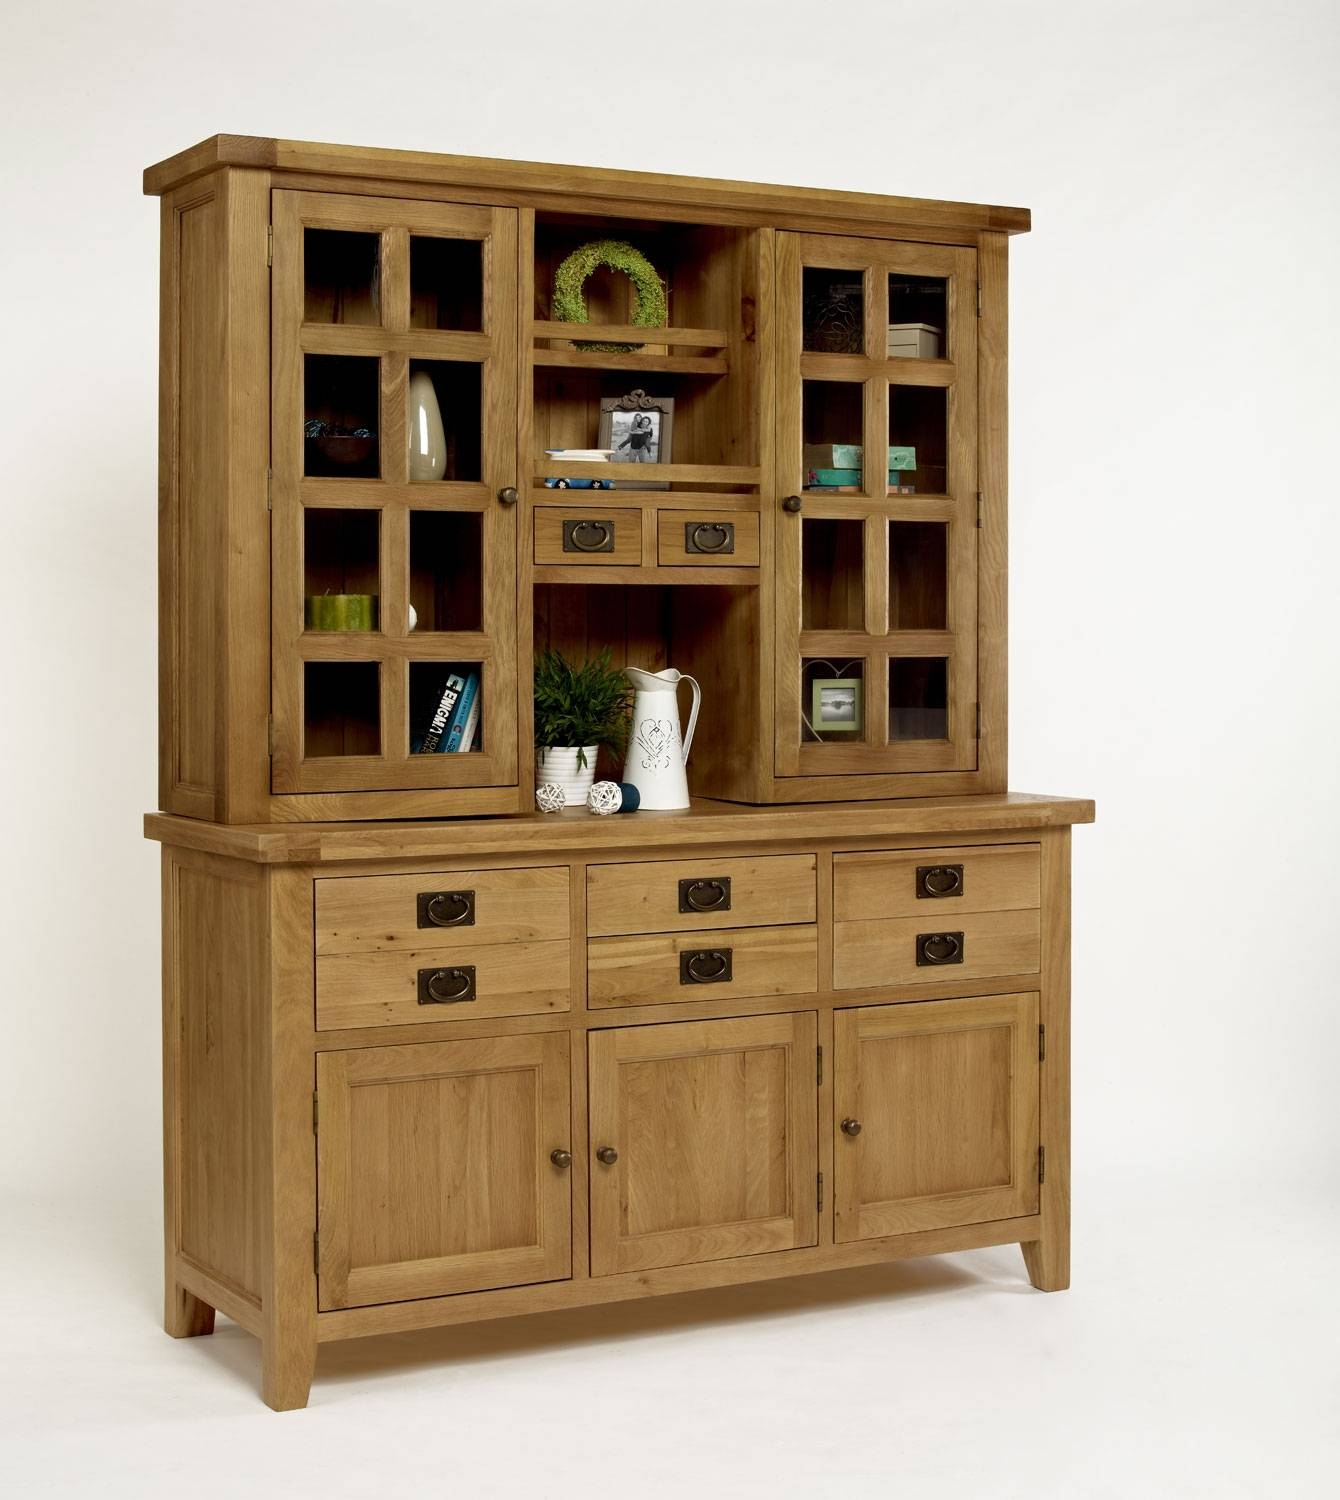 Sideboard With Hutch, A Multiple Media Storage | Homesfeed In Sideboard With Hutch (#11 of 20)